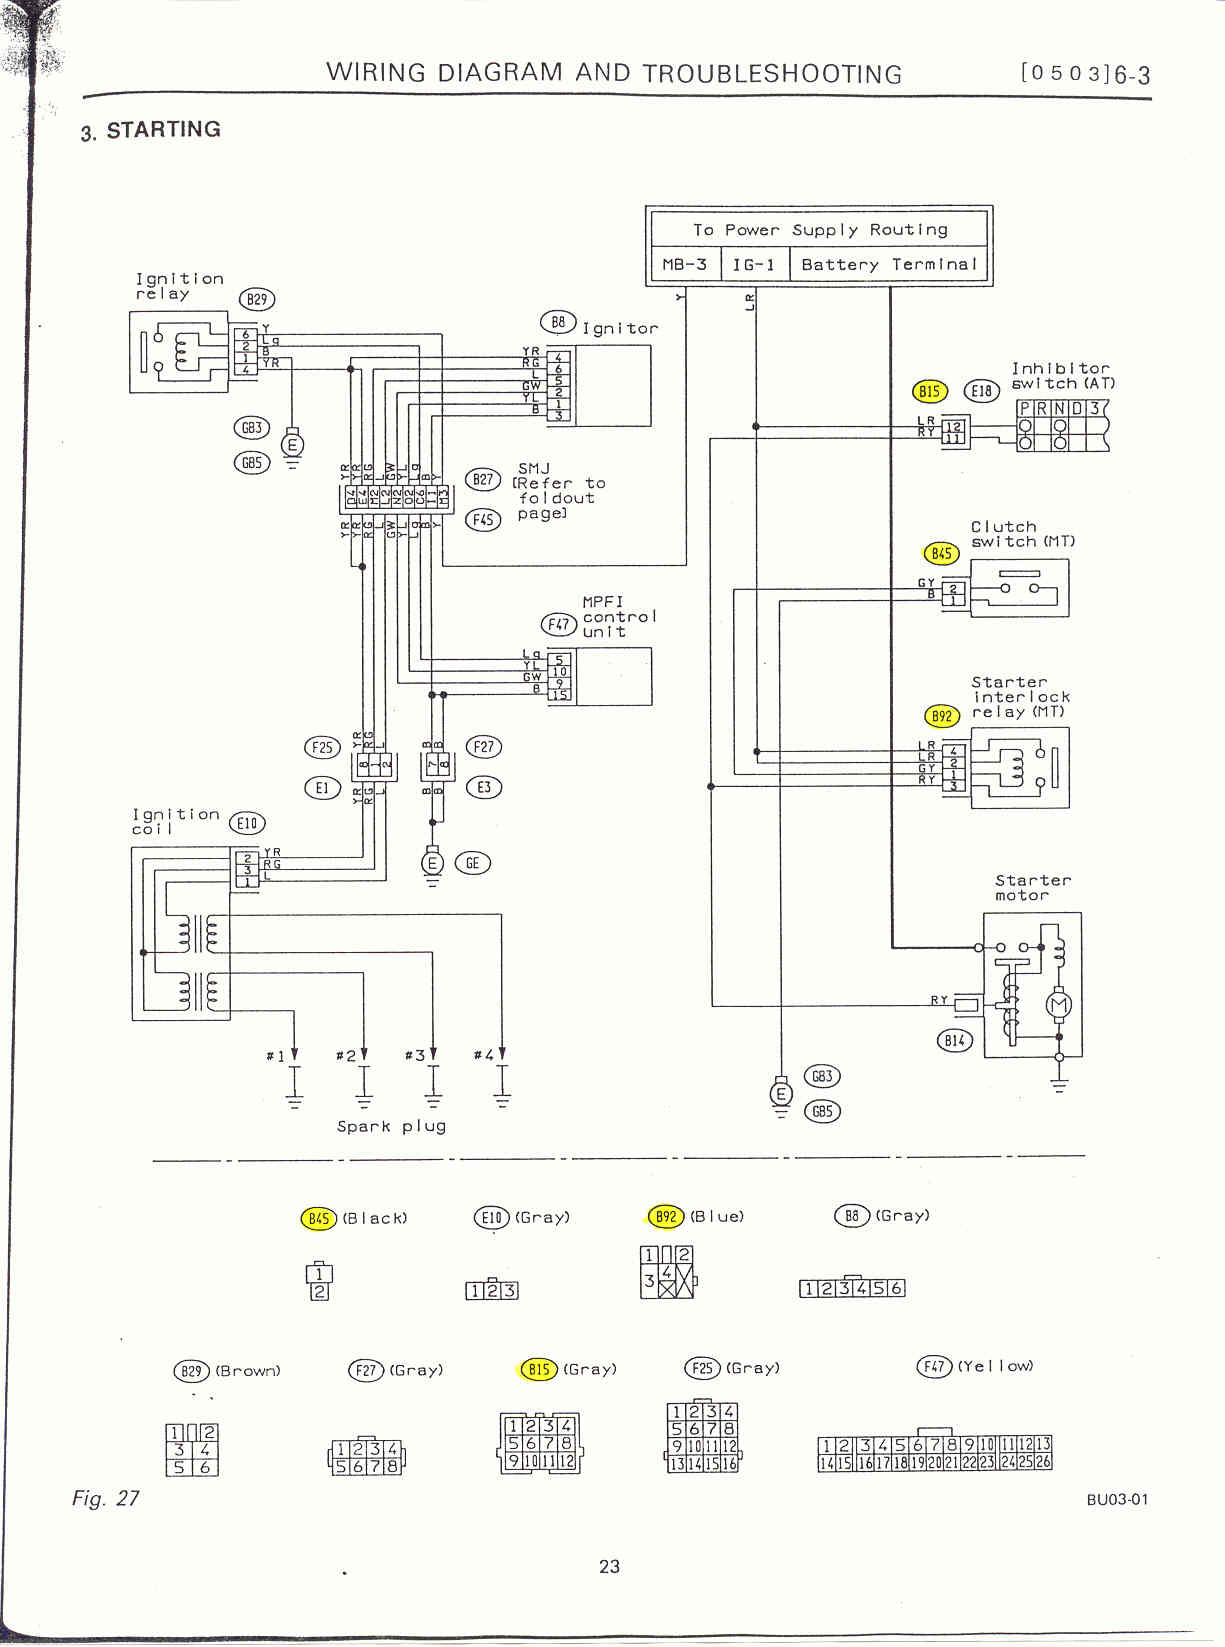 subaru legacy audio wiring diagram free software to draw uml diagrams surrealmirage swap electrical info and notes